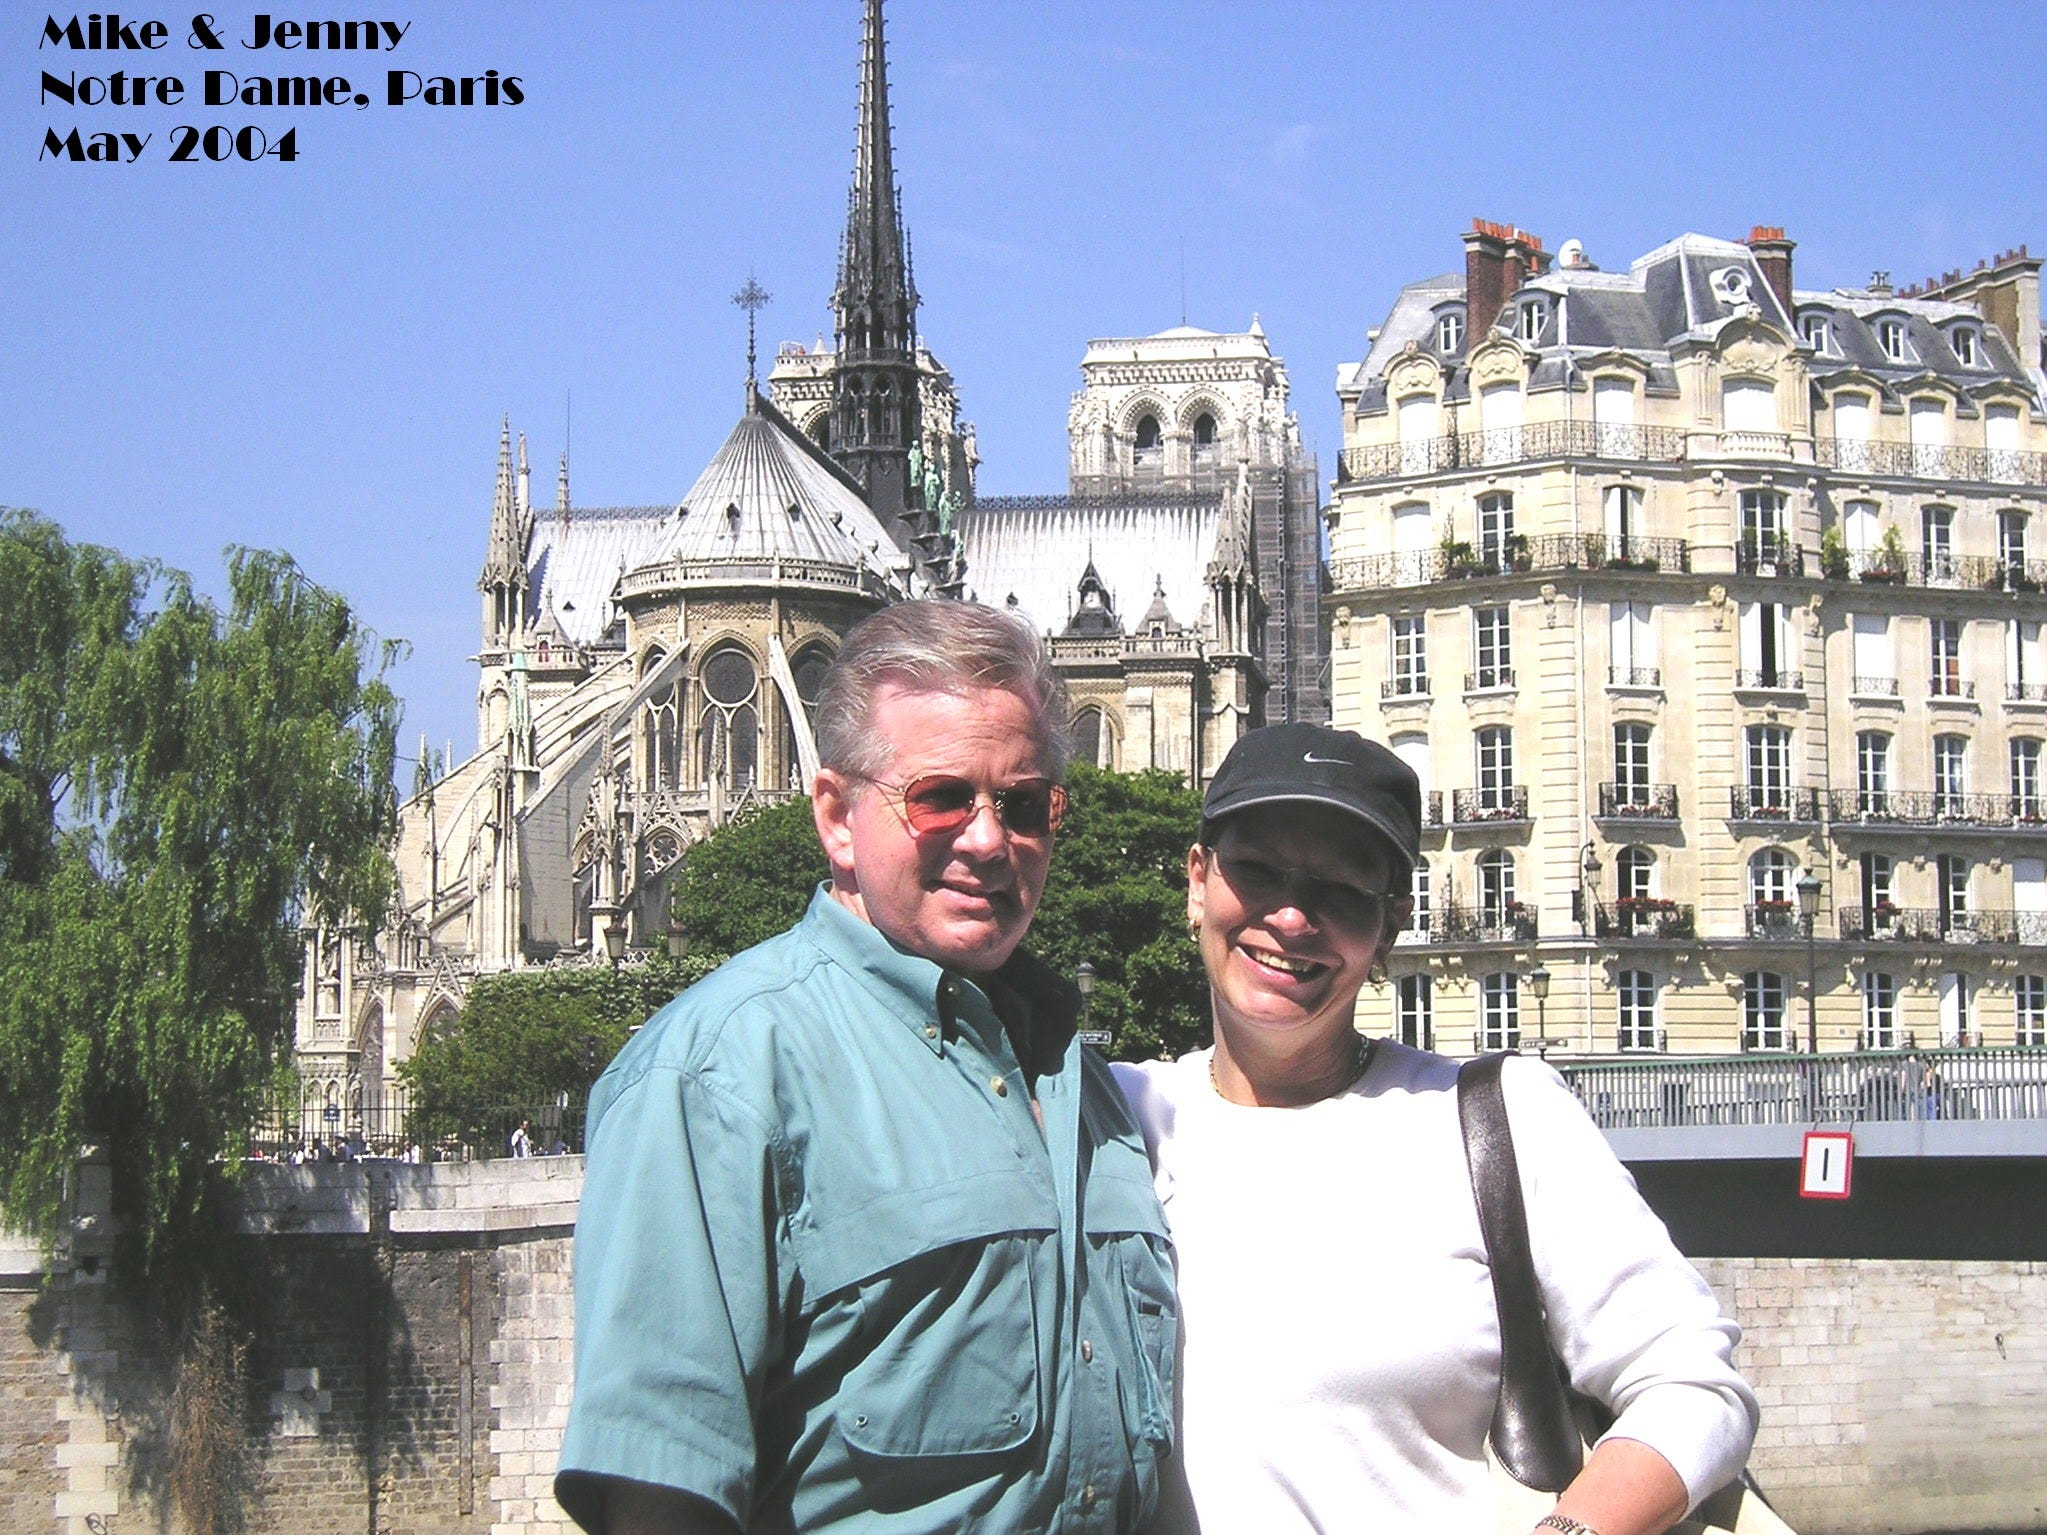 On our very first trip to Paris in 2004, our first stop was a visit to Notre Dame Cathedral. We were staying in a small hotel on the Île Saint-Louis  and, after dropping off our luggage, we walked across a foot bridge the short distance to the Ile de la Cité. As always, the crowds were thick. Like others, our faces were raised as we admired the flying buttresses and towers outside. Once inside, we walked slowly and deliberately appreciating the workmanship and faith of those who had built it. We lit candles and prayed for our loved ones.  We returned to Paris five years later in 2009 and again made our way to Notre Dame to pray.  A trip on the Seine at sunset gave us a new perspective to admire this magnificent edifice.